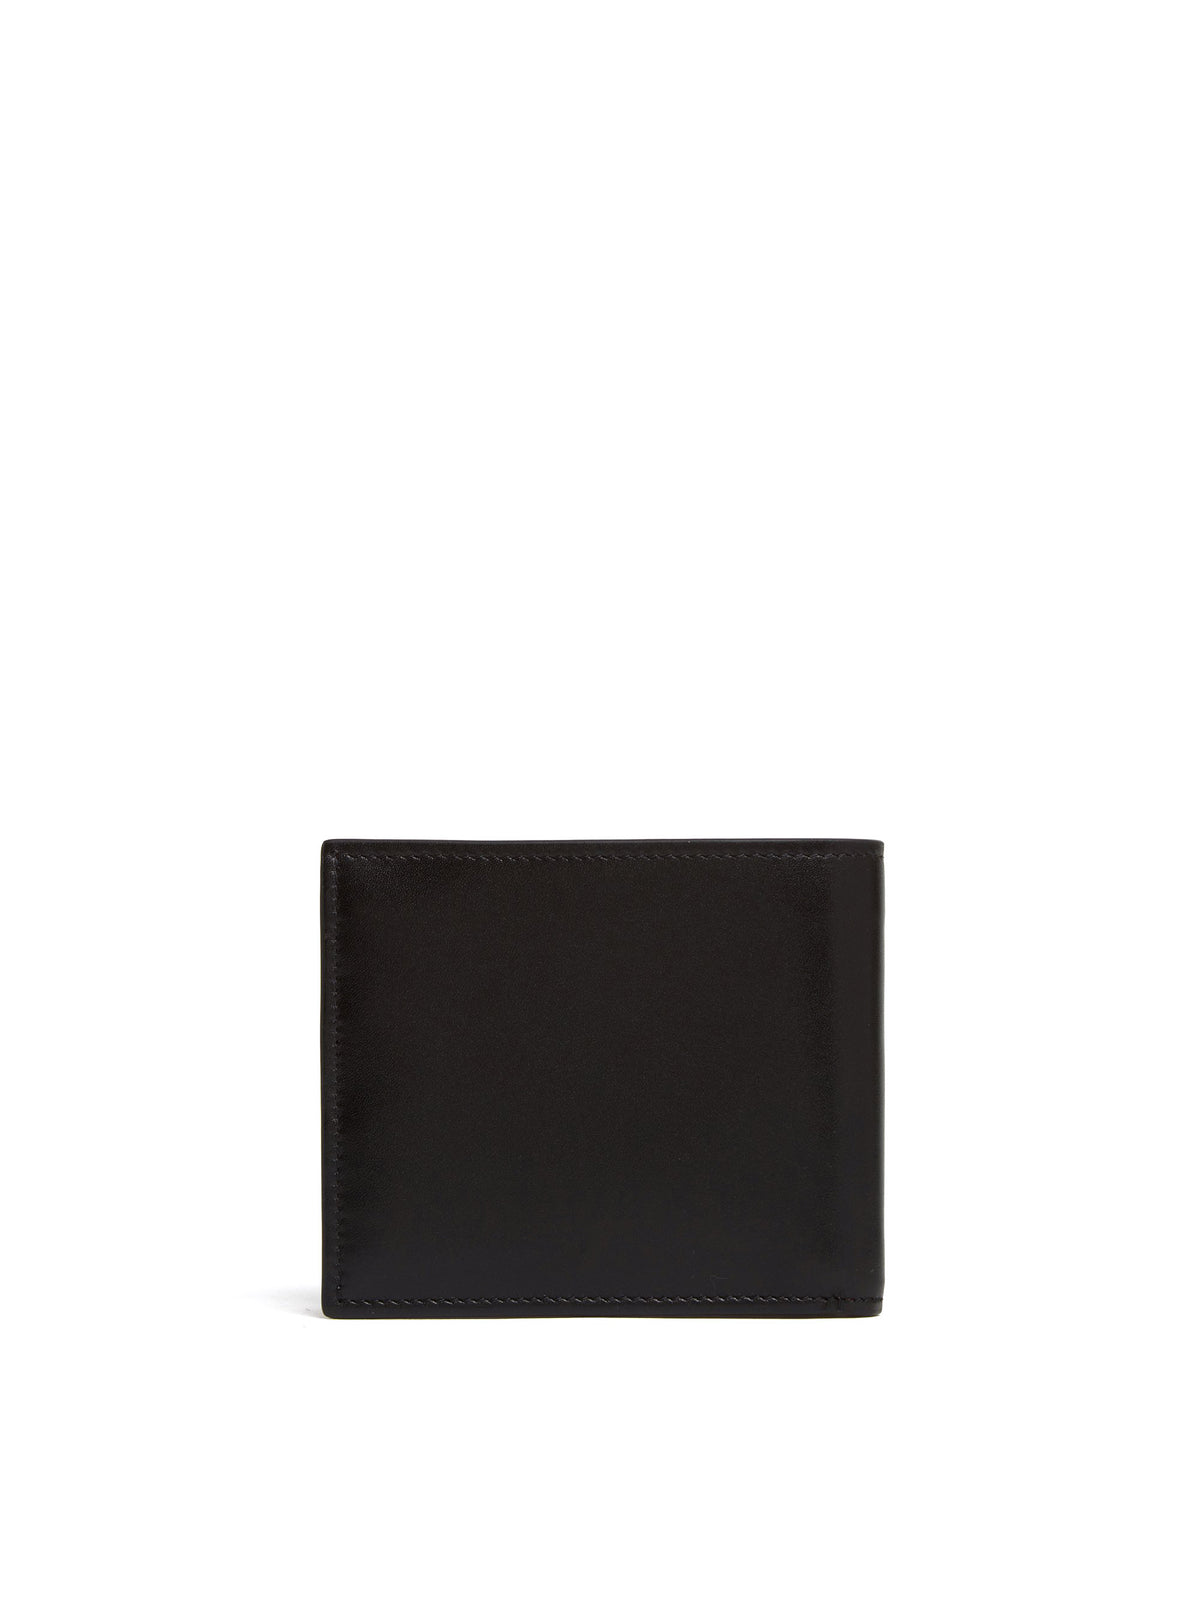 Mark Cross Bi-Fold X Leather Wallet Smooth Calf Black Back